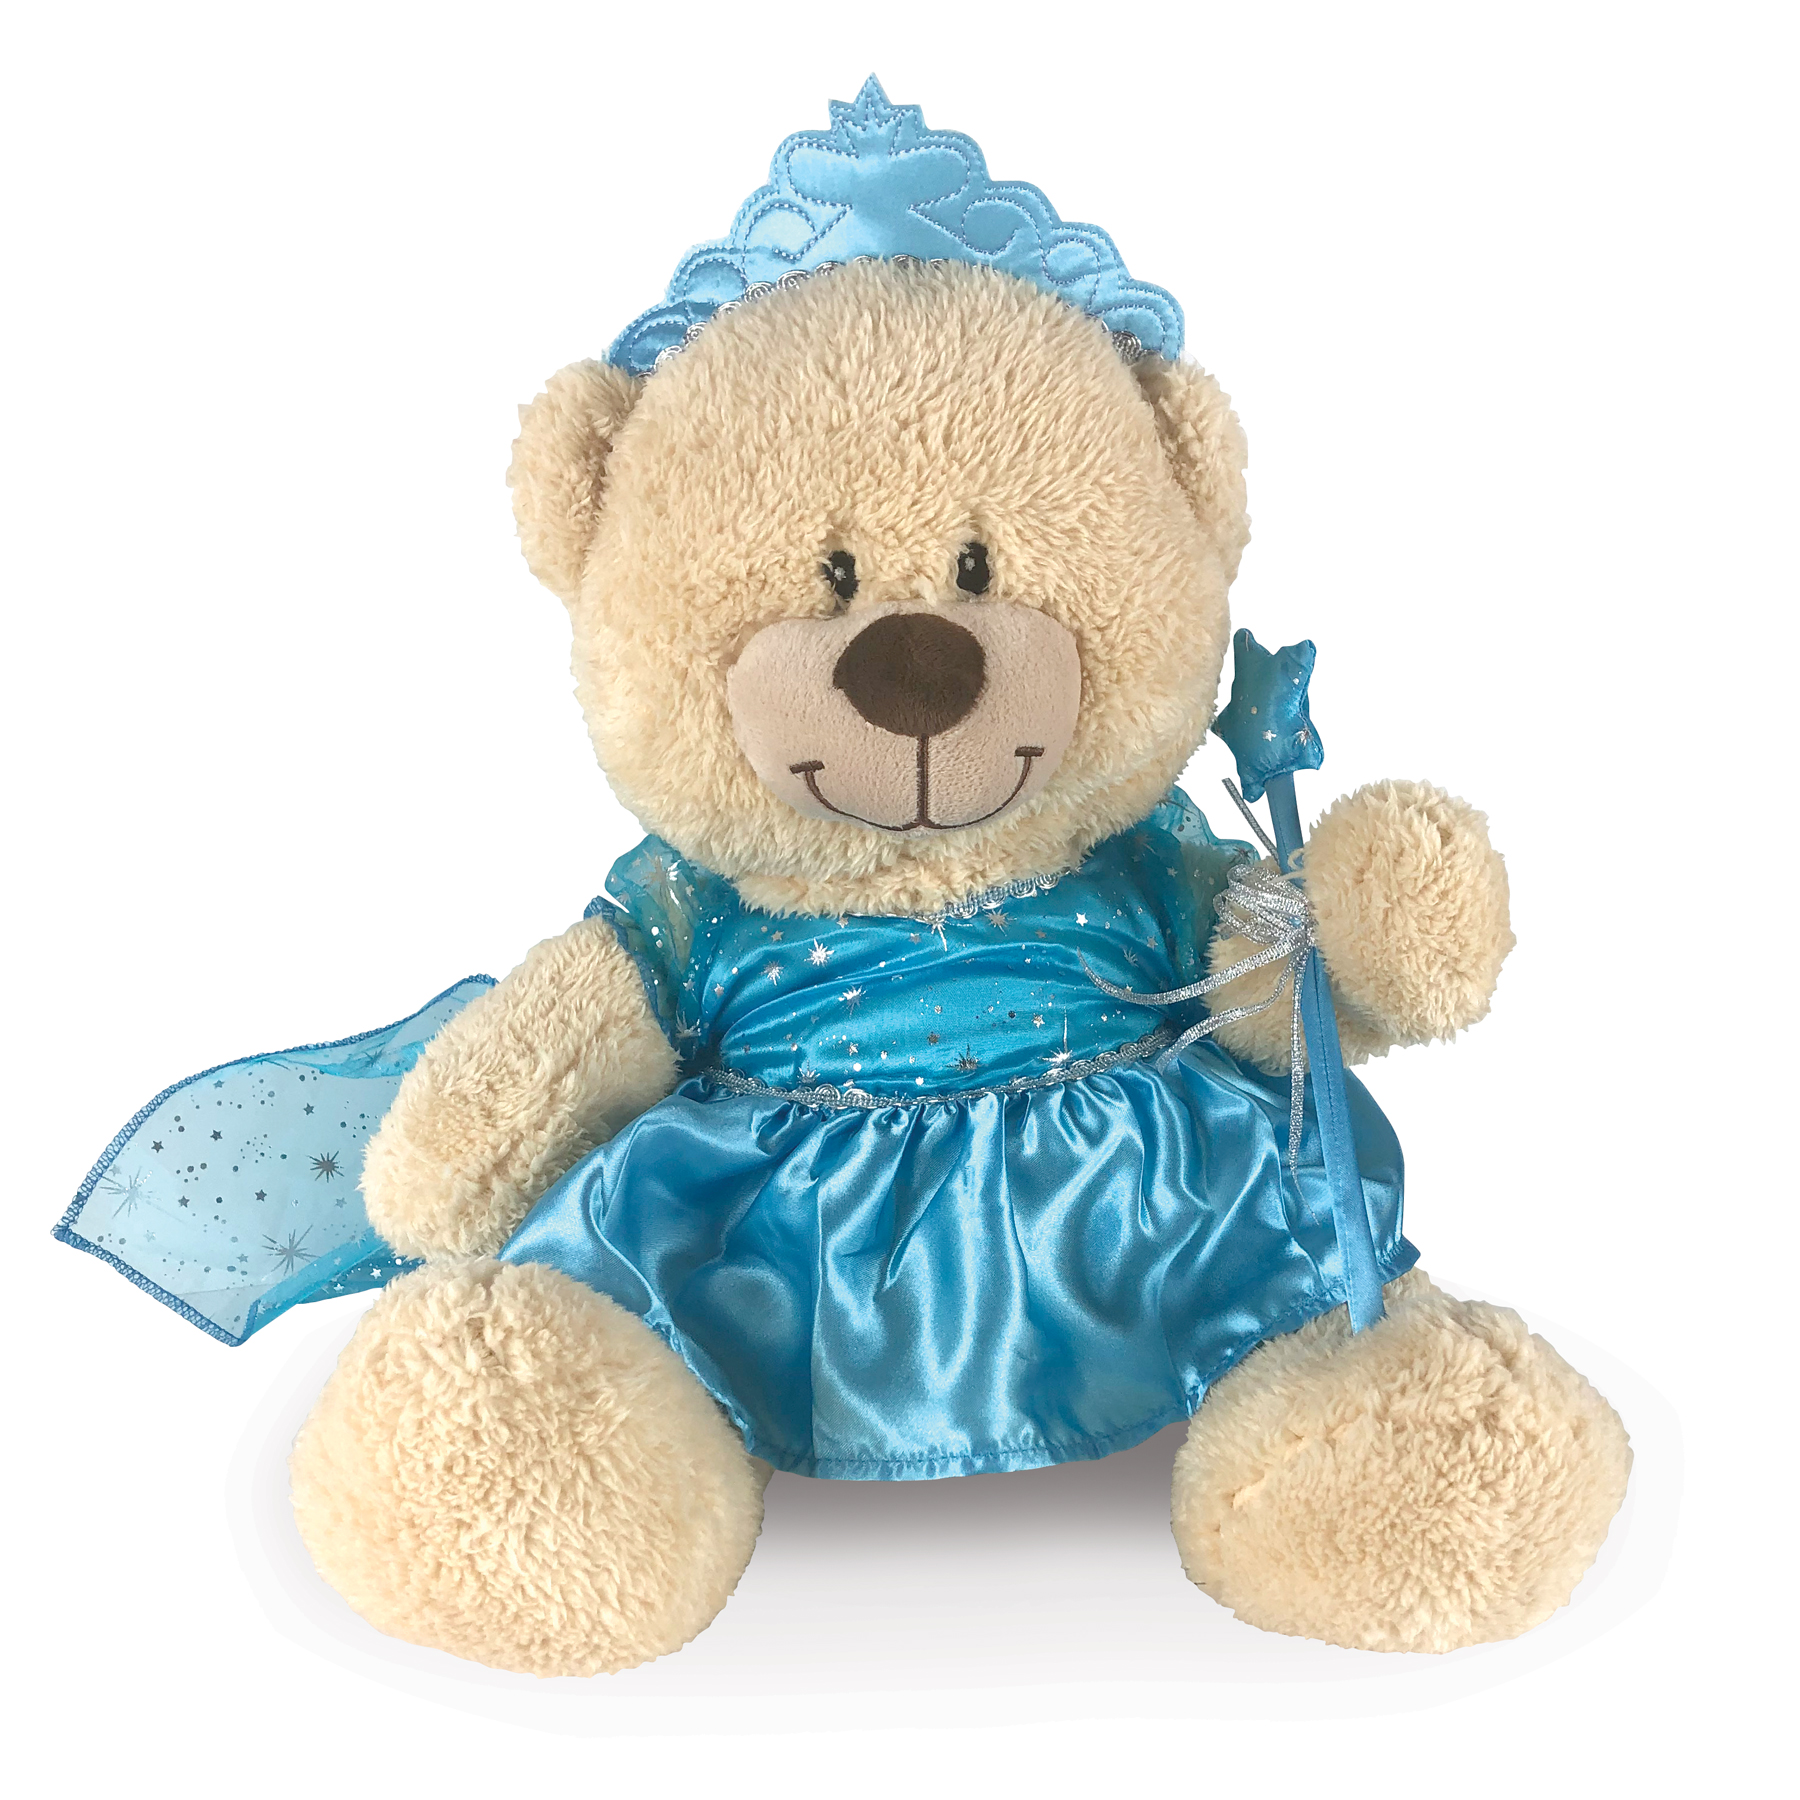 Blue Princess Dress for Stuffed Animal | Snow Princess Dress Bear Accessory